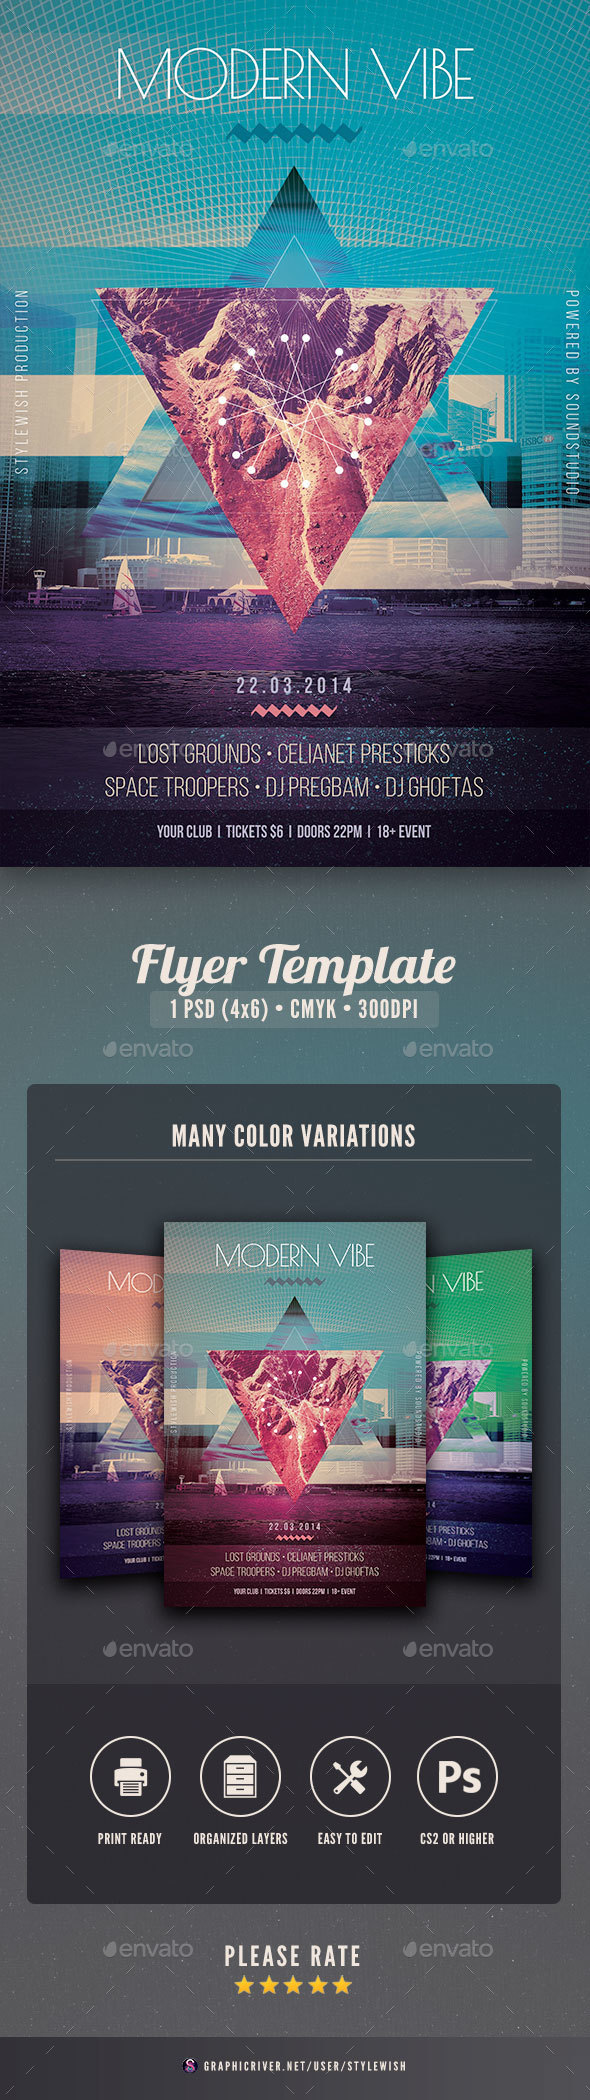 Modern Vibe Flyer - Clubs & Parties Events